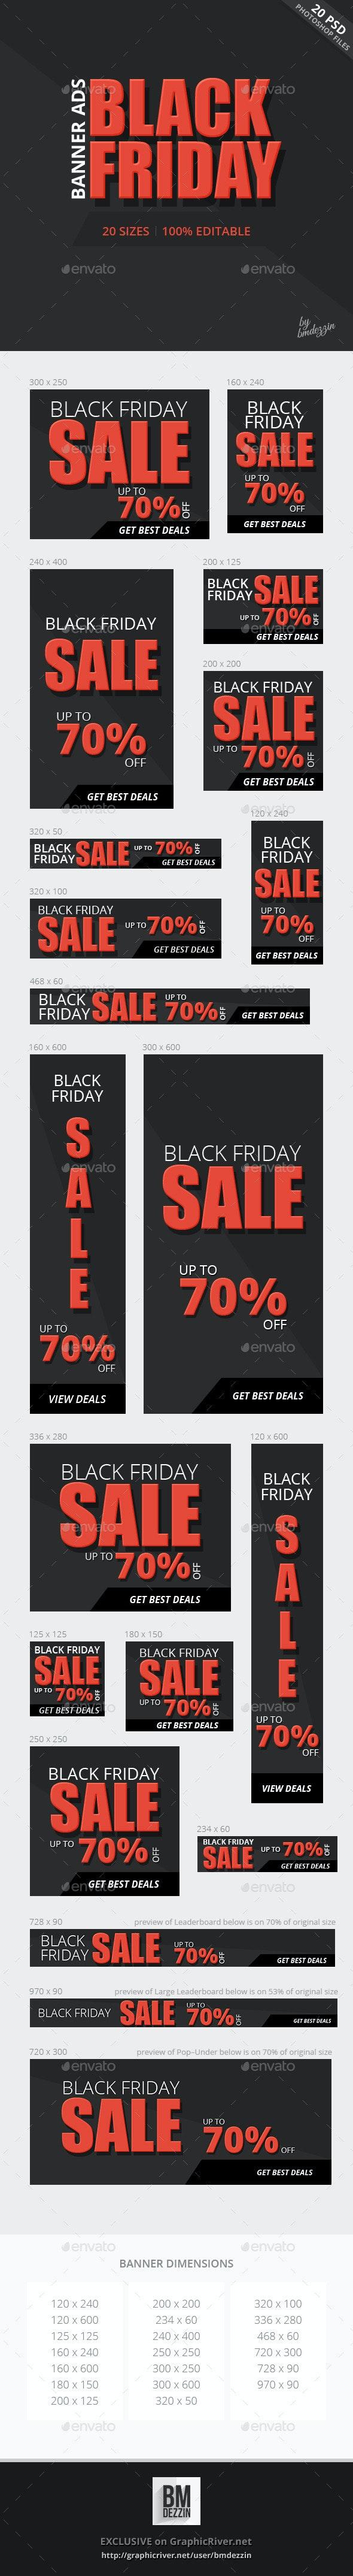 Black Friday Banner Ads - Banners & Ads Web Elements